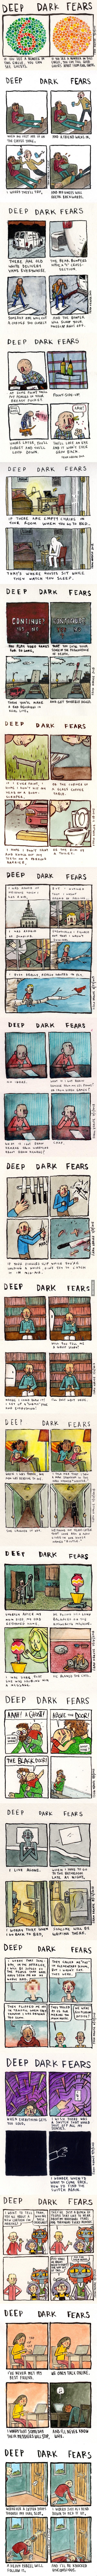 All the Deep Dark Fears Part (4 of 5)